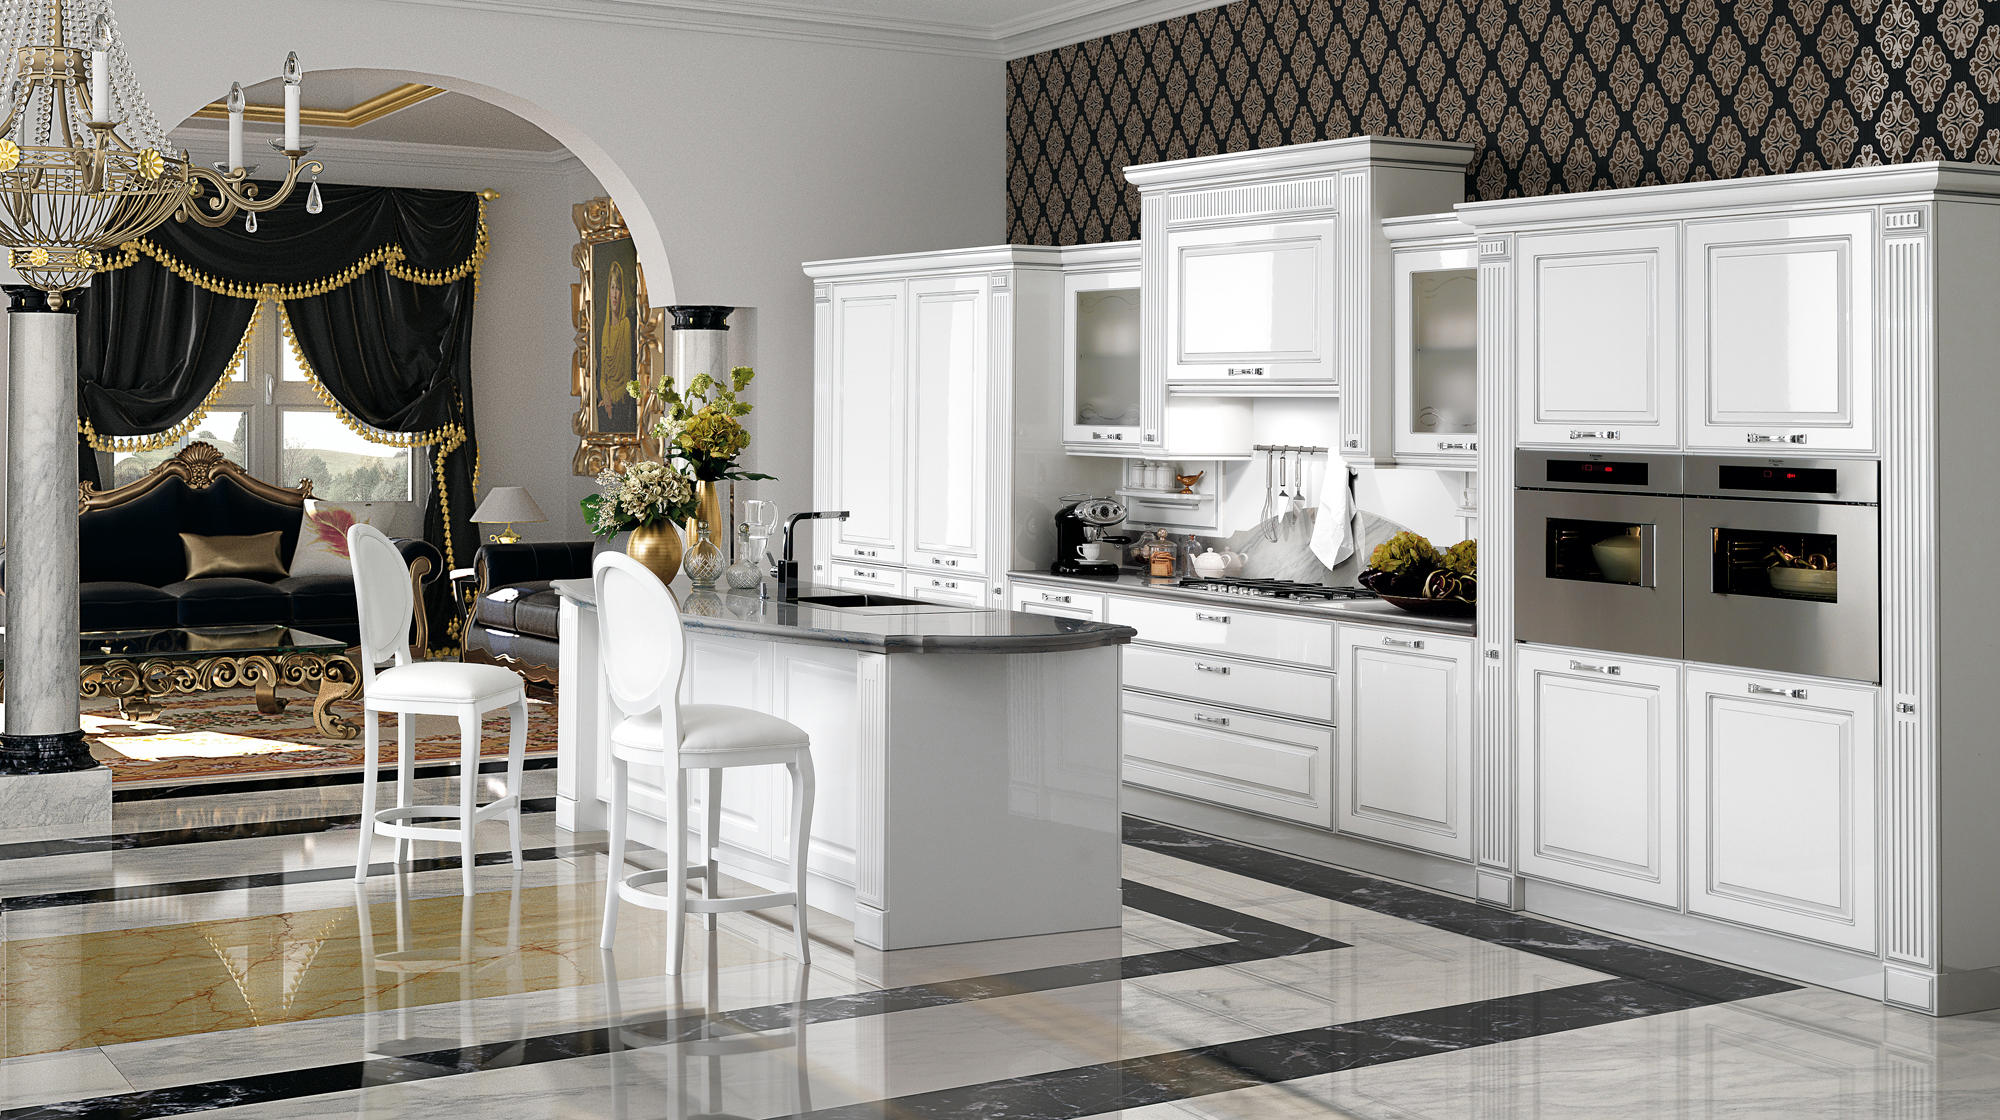 mirabeau fitted kitchens from veneta cucine architonic. Black Bedroom Furniture Sets. Home Design Ideas